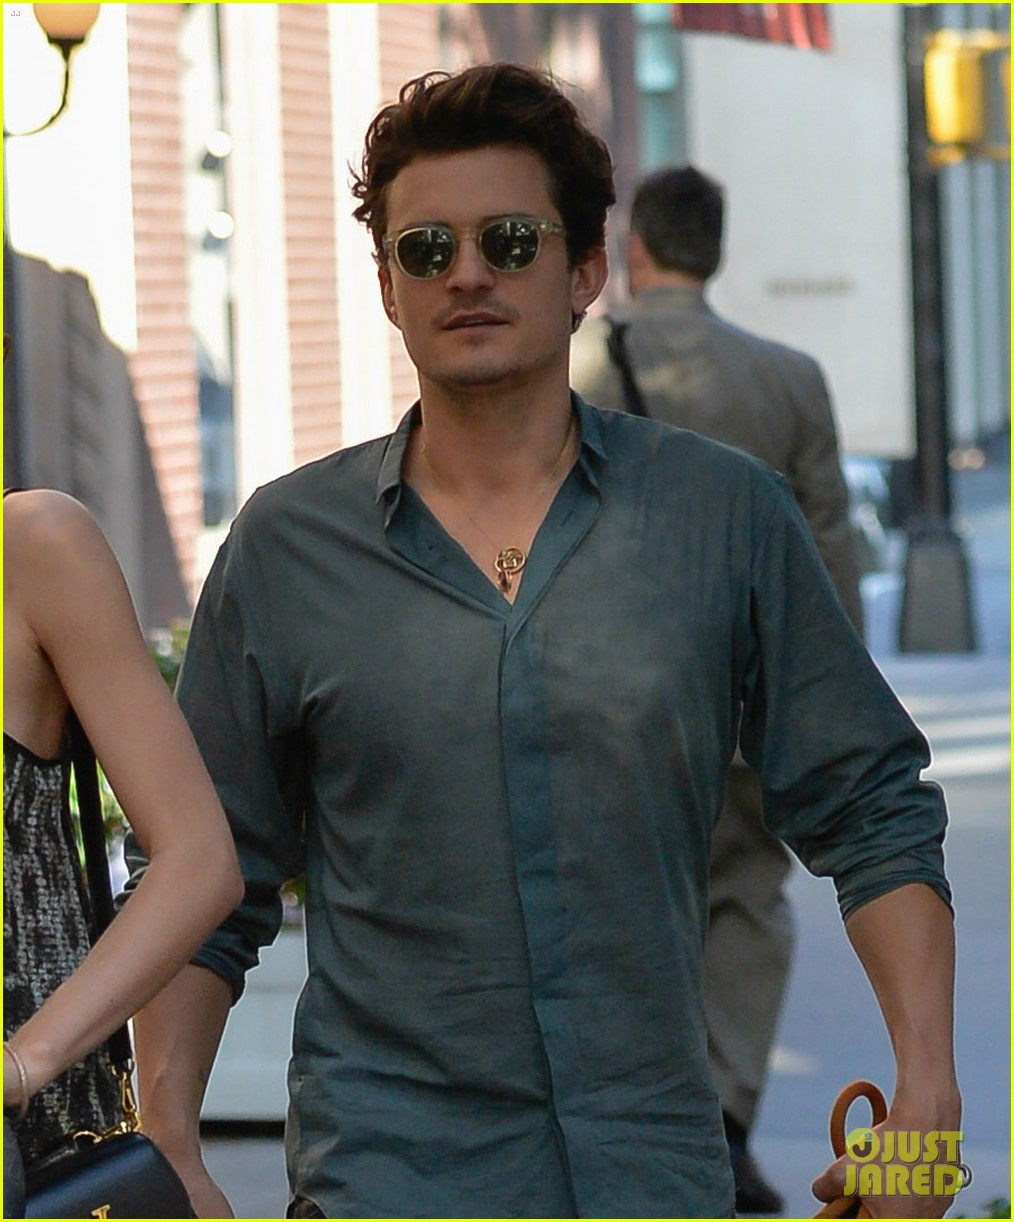 orlando bloom miranda kerr big apple stroll with flynn 022904085